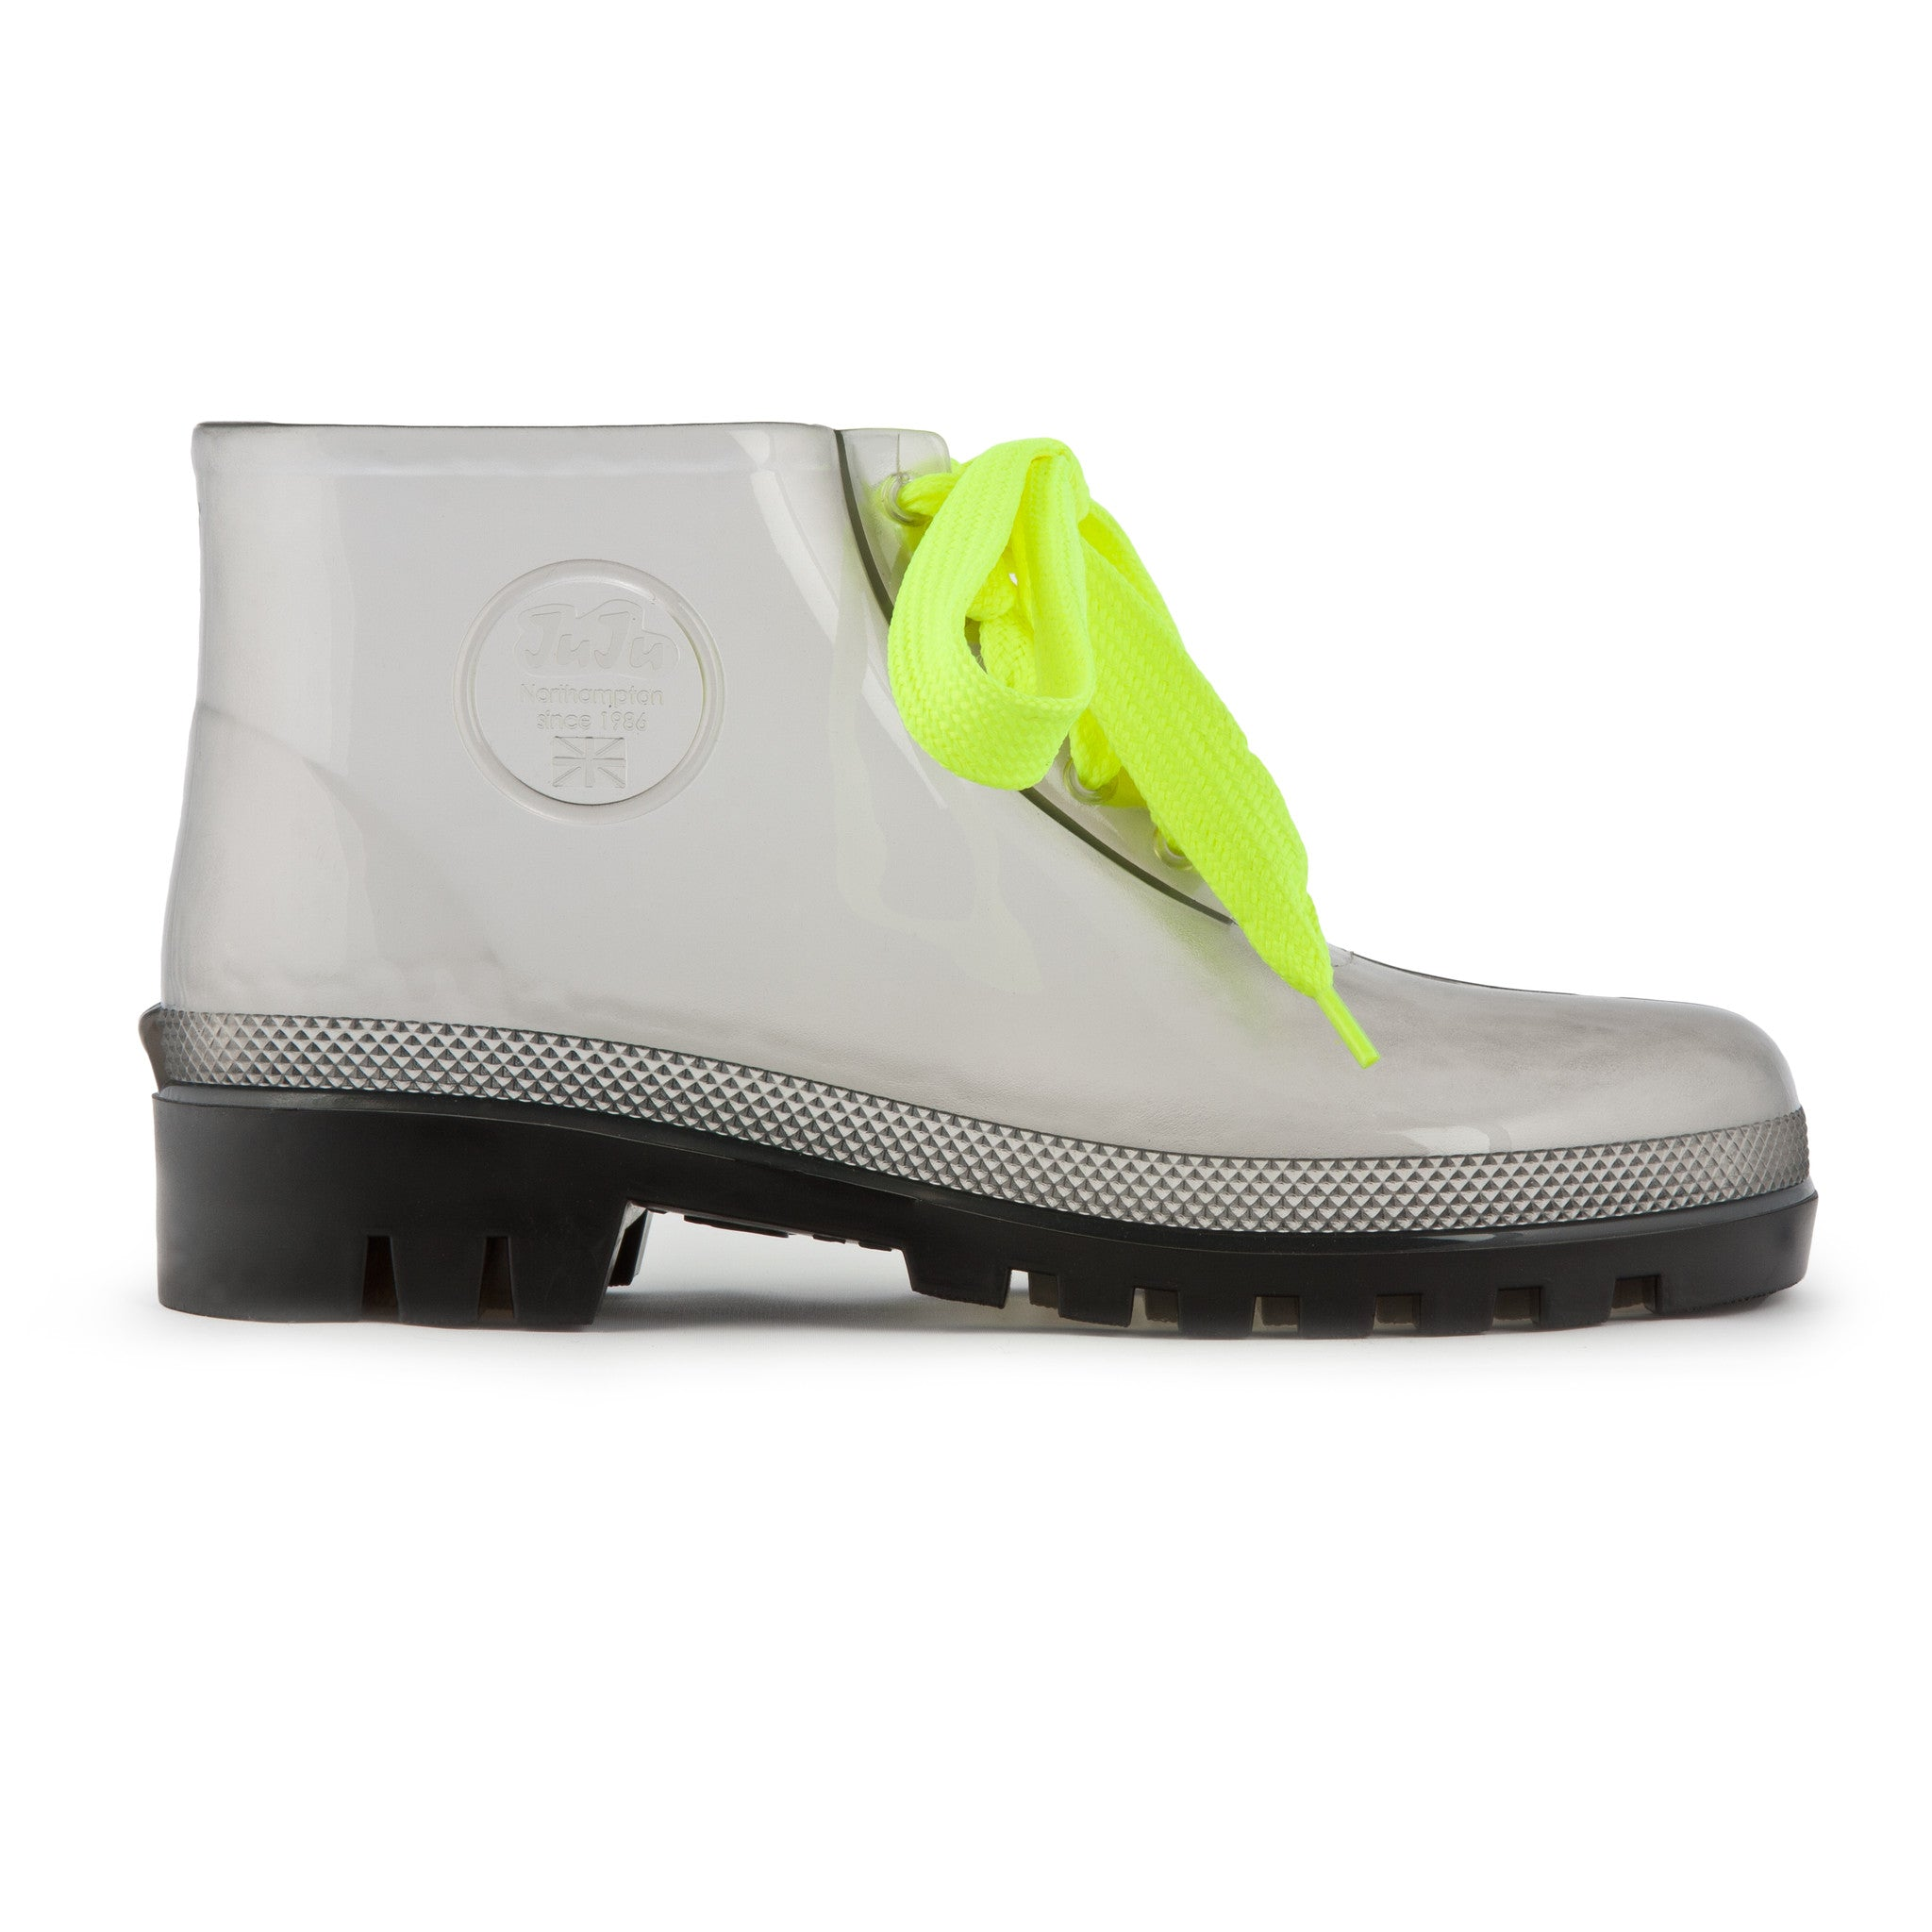 JuJu Jellyboots (Smoke Grey) - Plus Minus